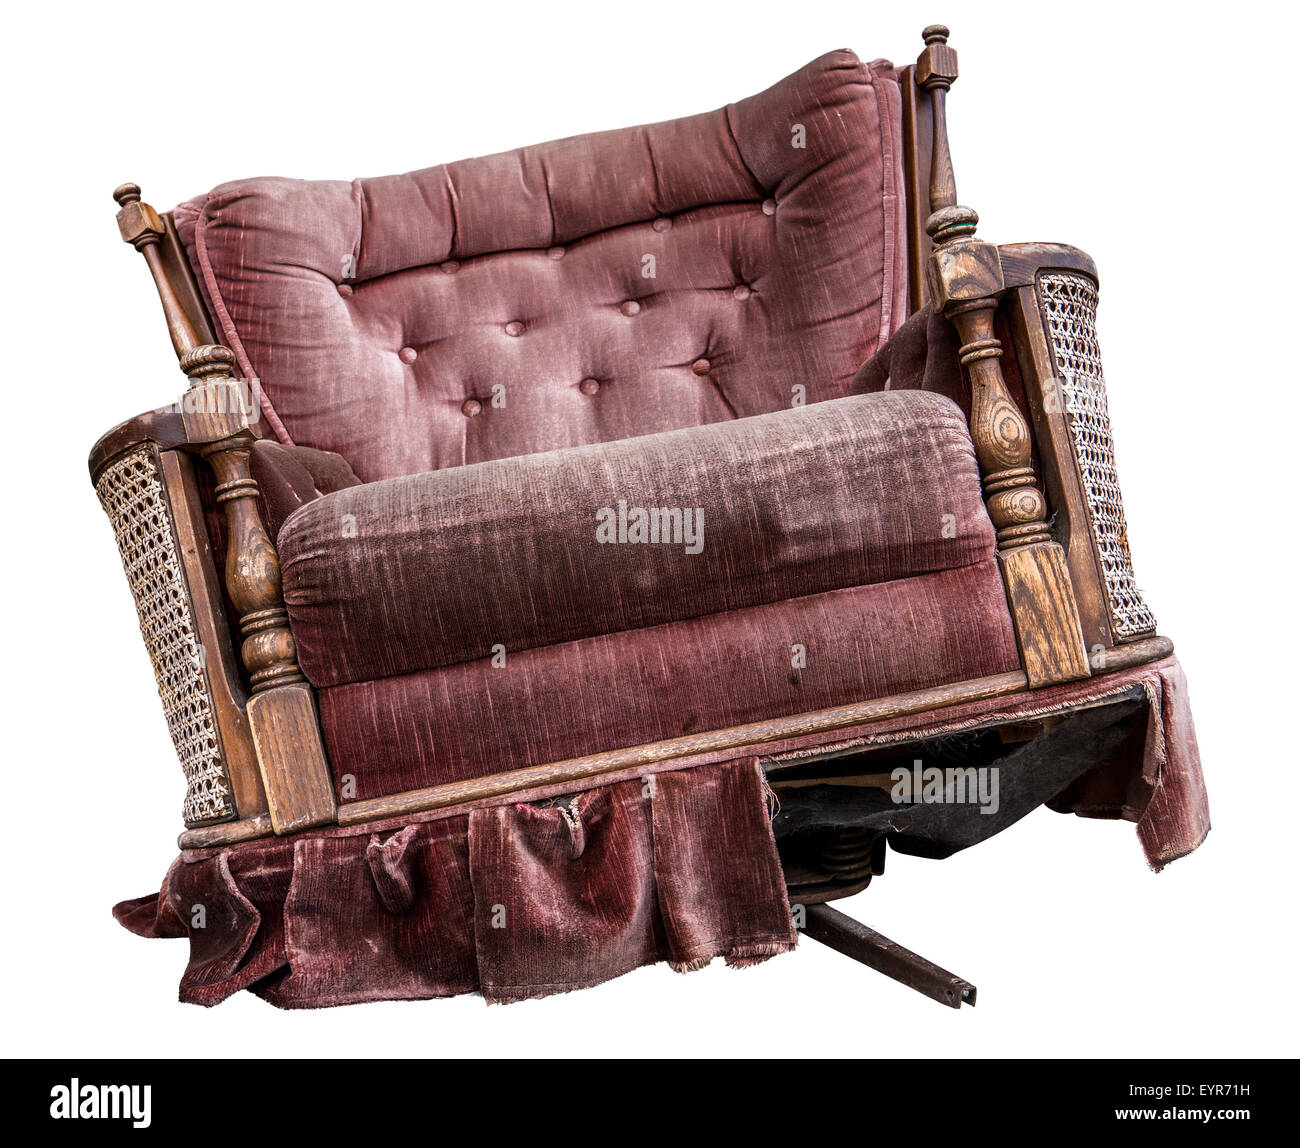 An Isolated Old Damaged Vintage Purple Armchair   Stock Image